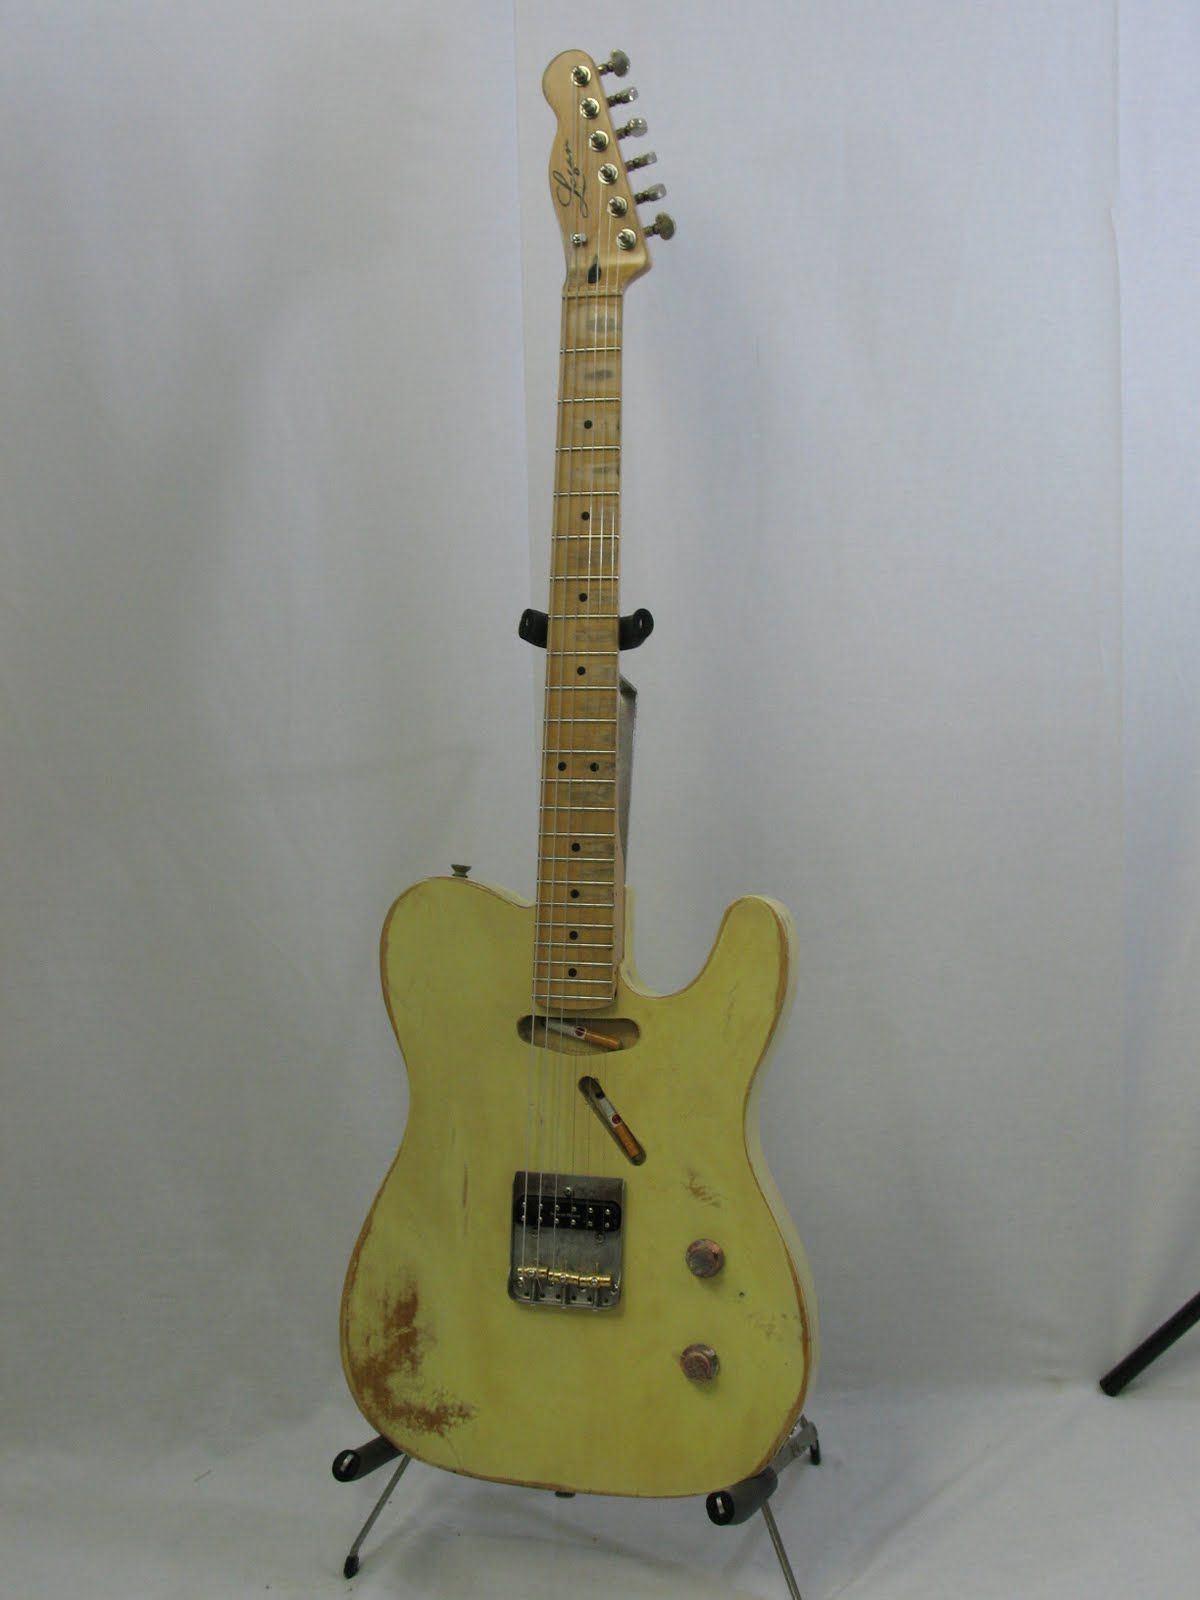 billy gibbons telecaster guitars - Google Search